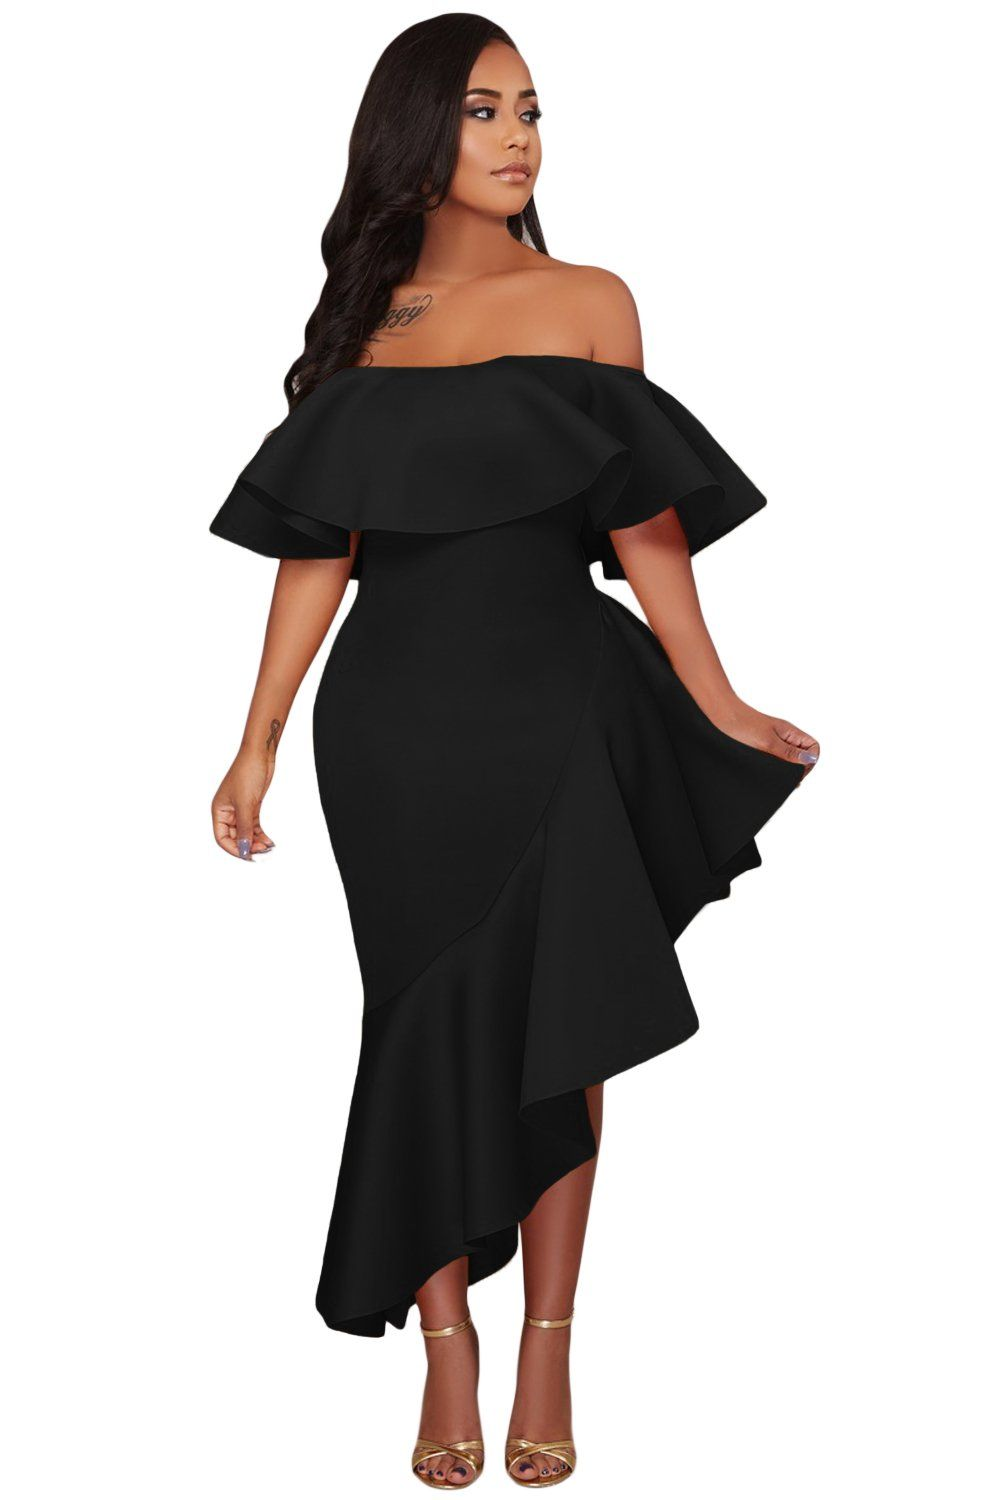 1a6ade79eef Black Asymmetric Ruffle Off Shoulder Party Dress in 2019 | Products ...